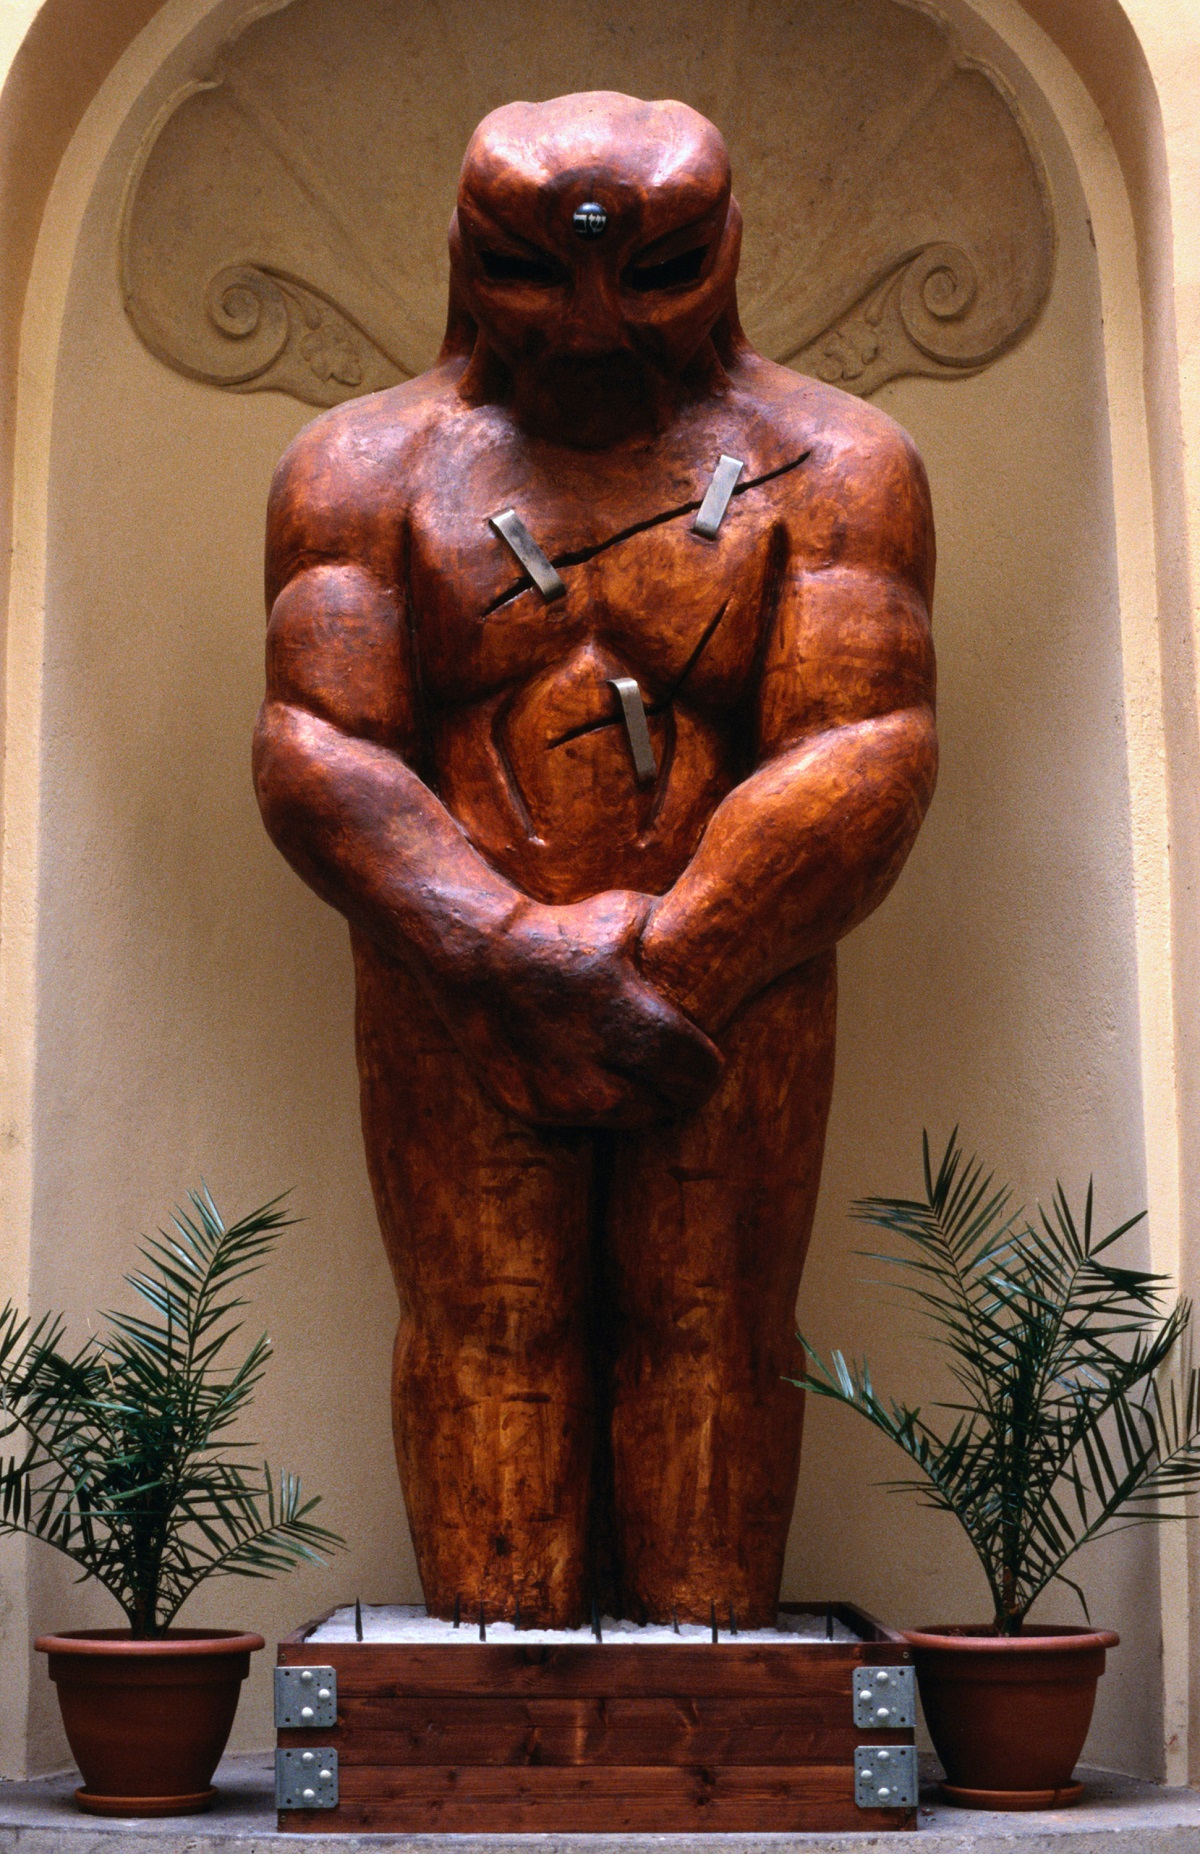 A wooden Golem in Karlova. The creation of a golem, a man crafted out of clay, was created by Rabbi Yehudah Loevy ben Bezalel (the Maharal) of Prague to protect 16th century Jews from persecution.